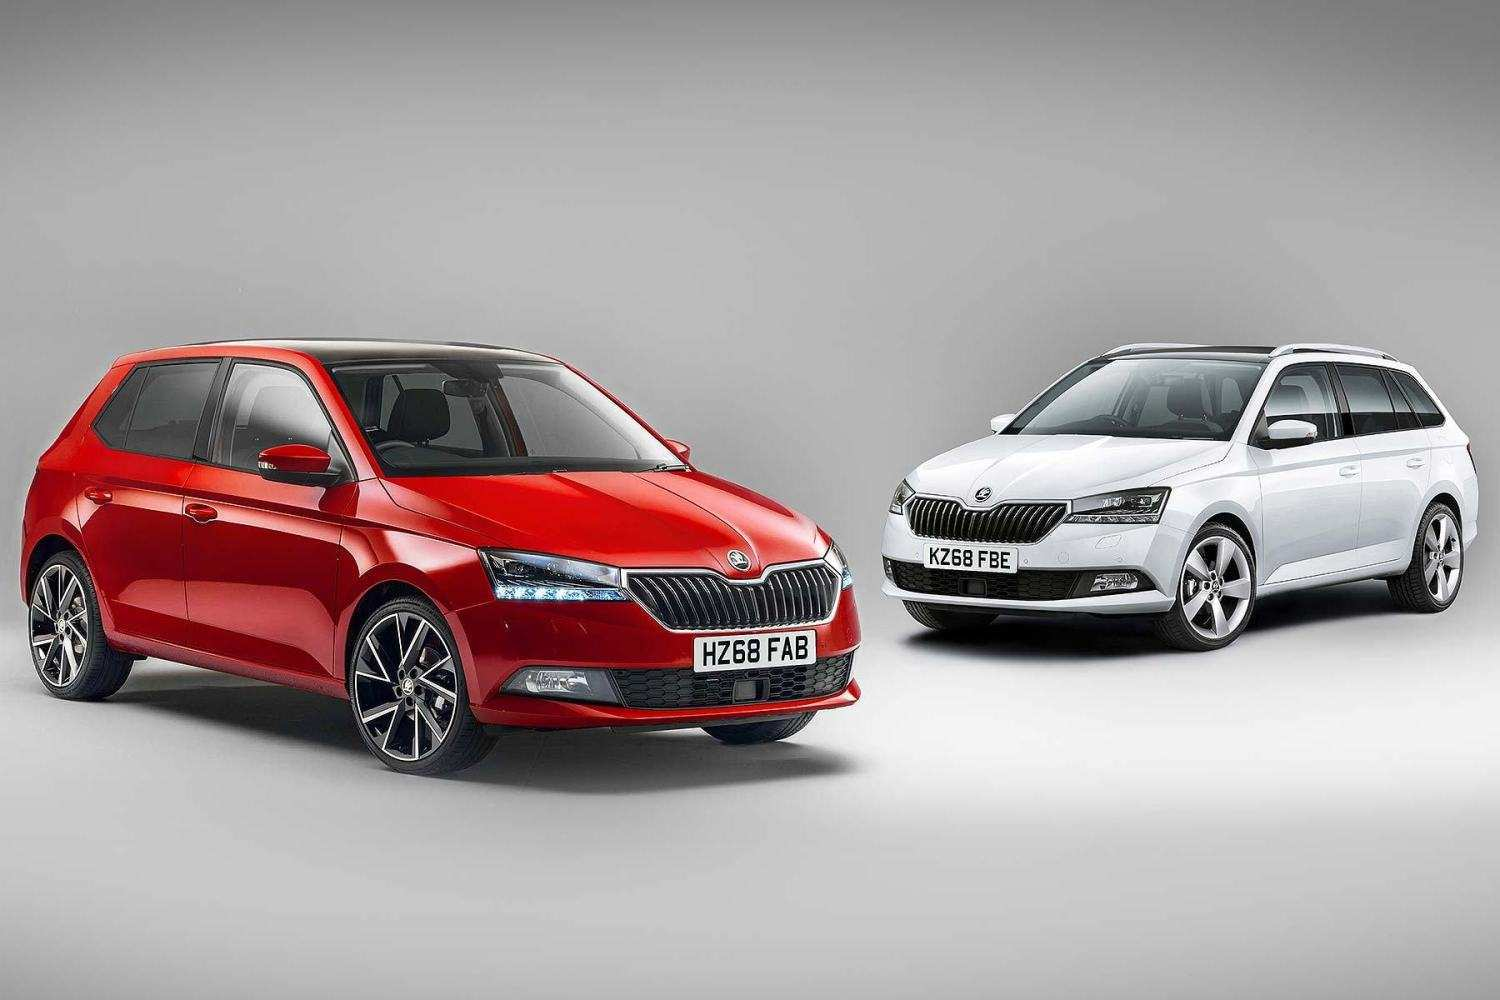 65 New 2019 Skoda Fabia Concept and Review